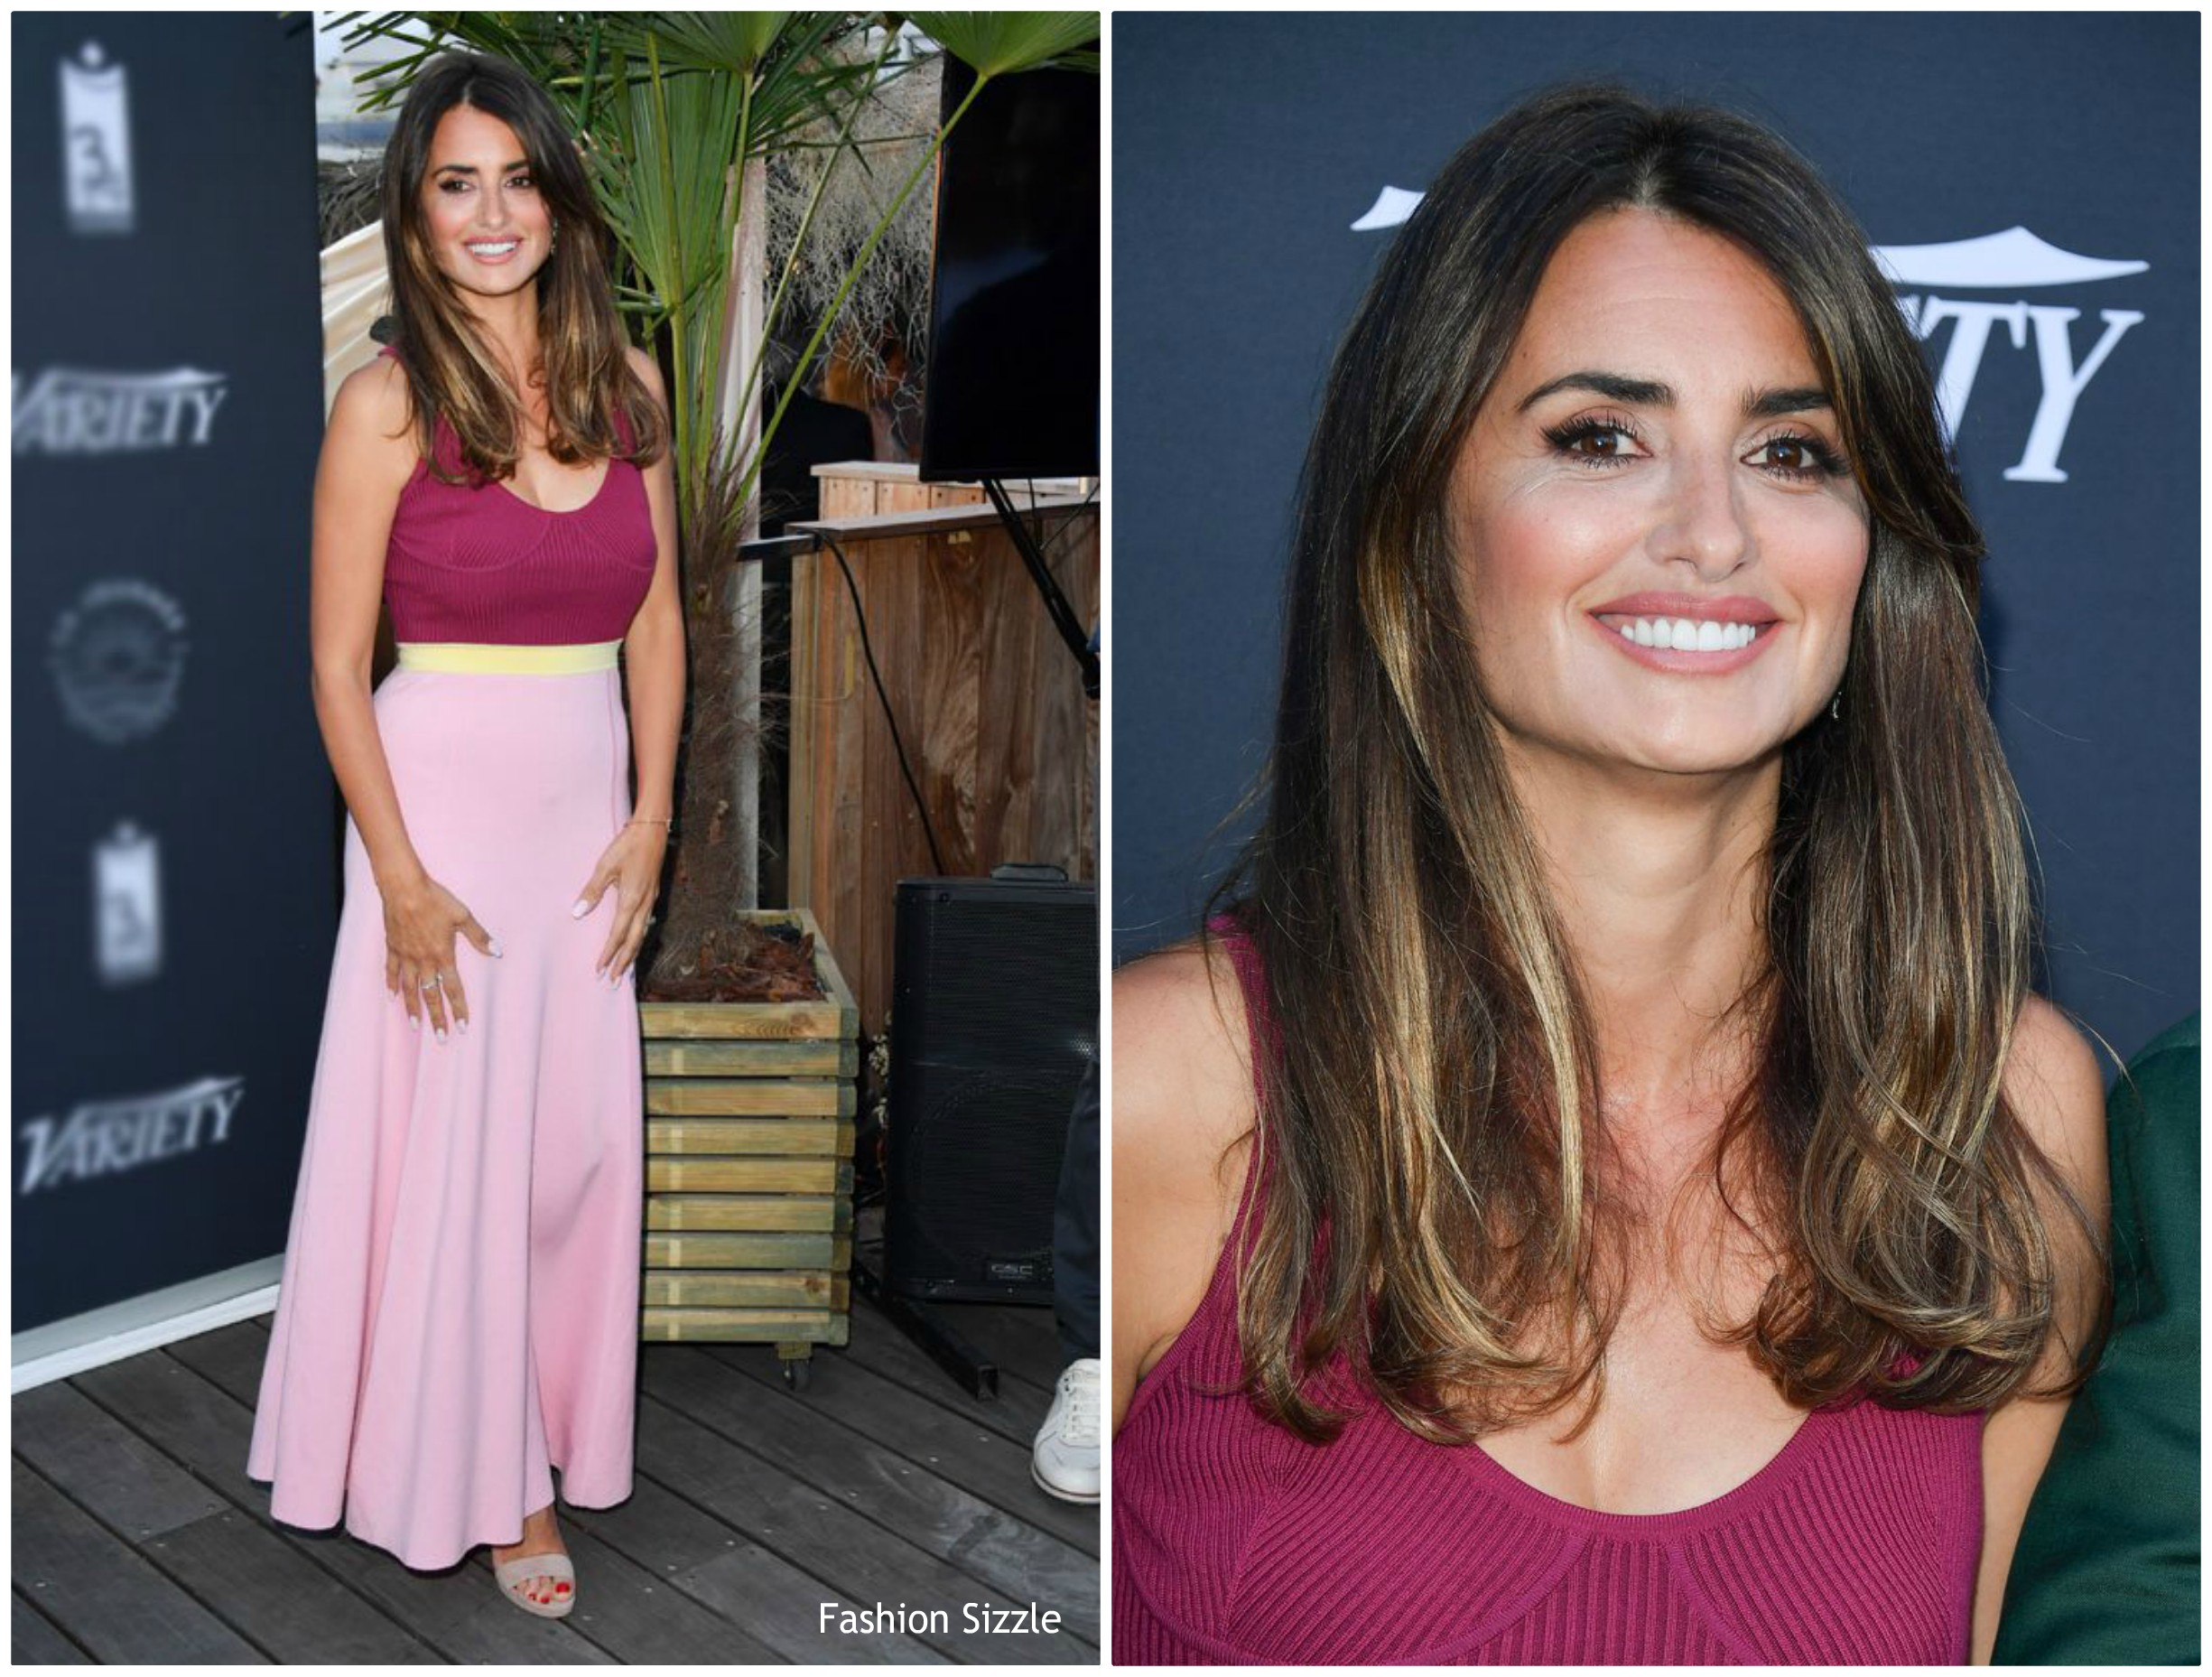 penelope-cruz-in-gabriela-hearst-the-journey-by-the-land-cannes-film-festival-photocall